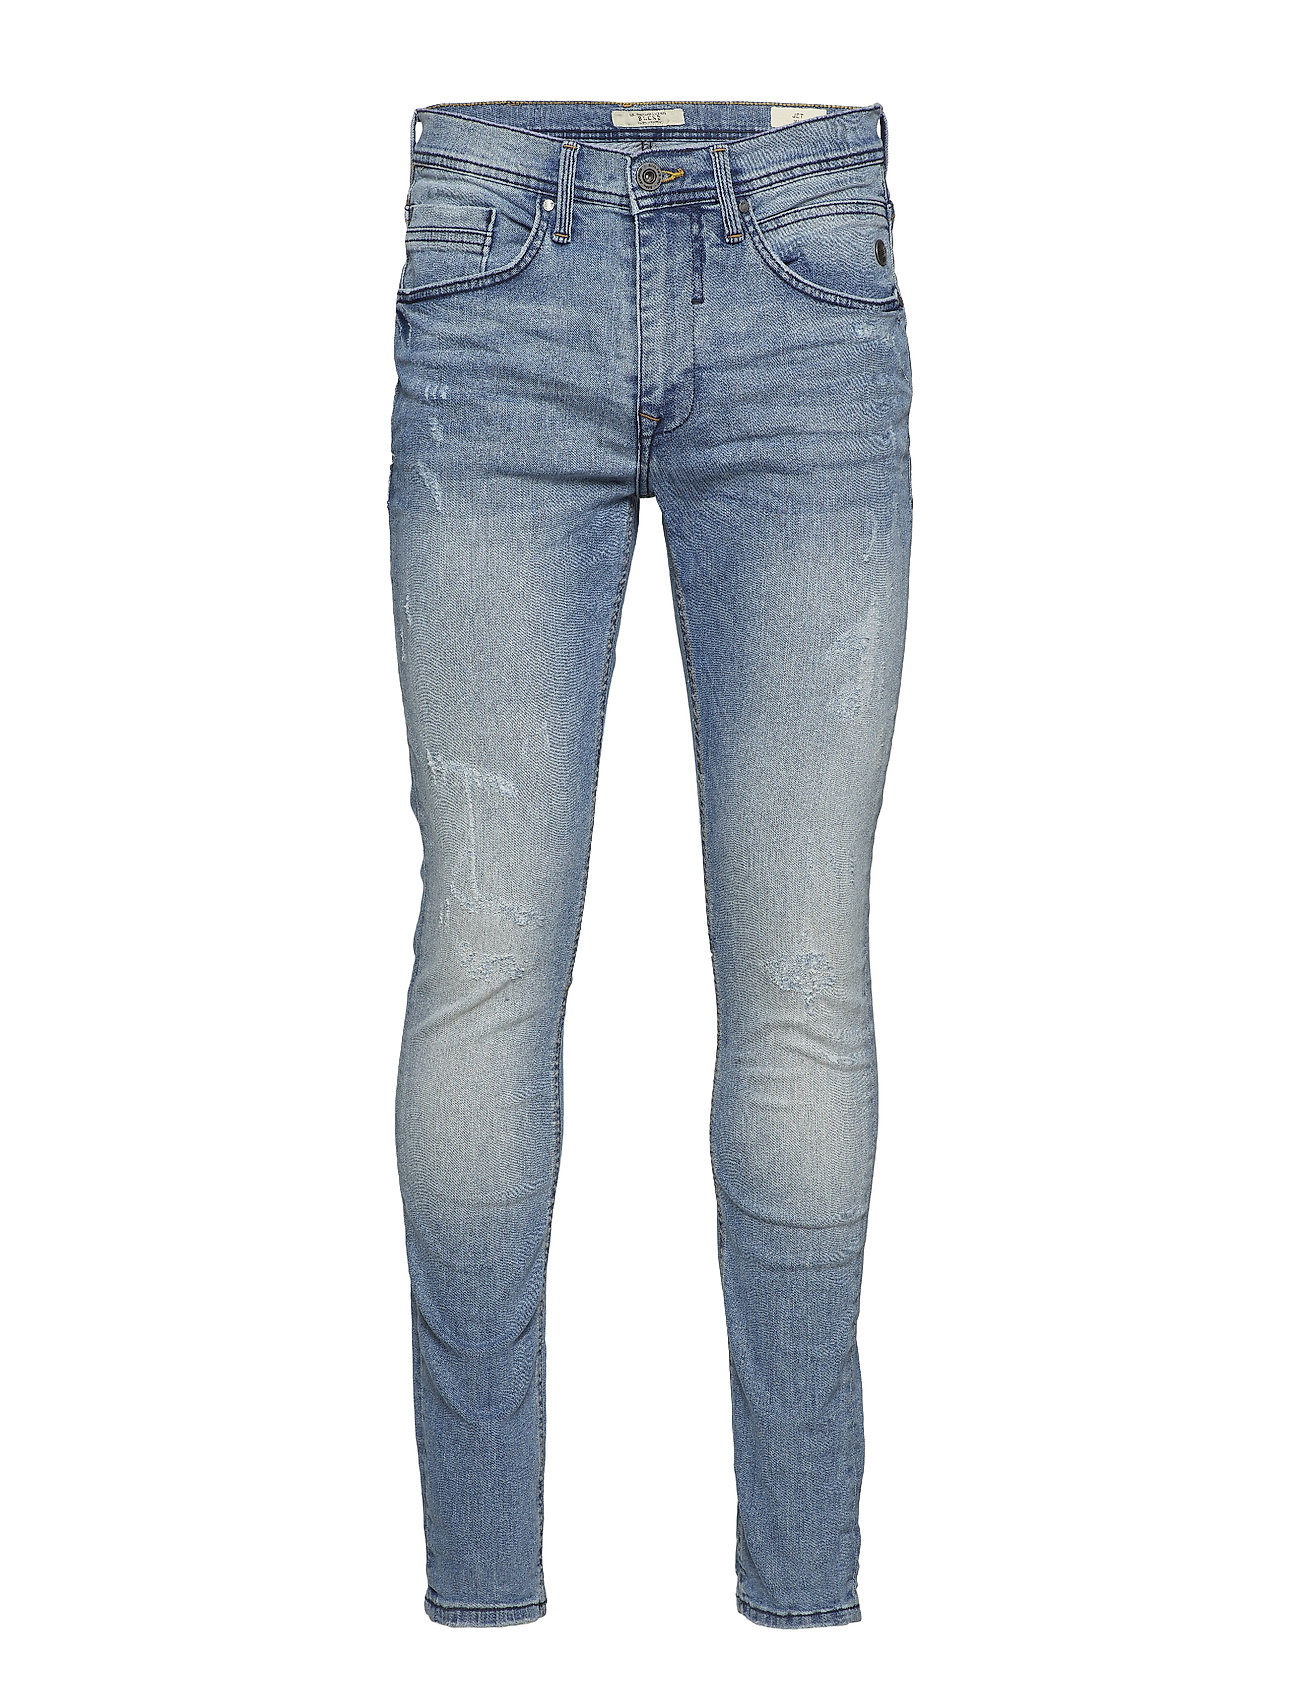 Image of Jeans - Noos (3067440819)